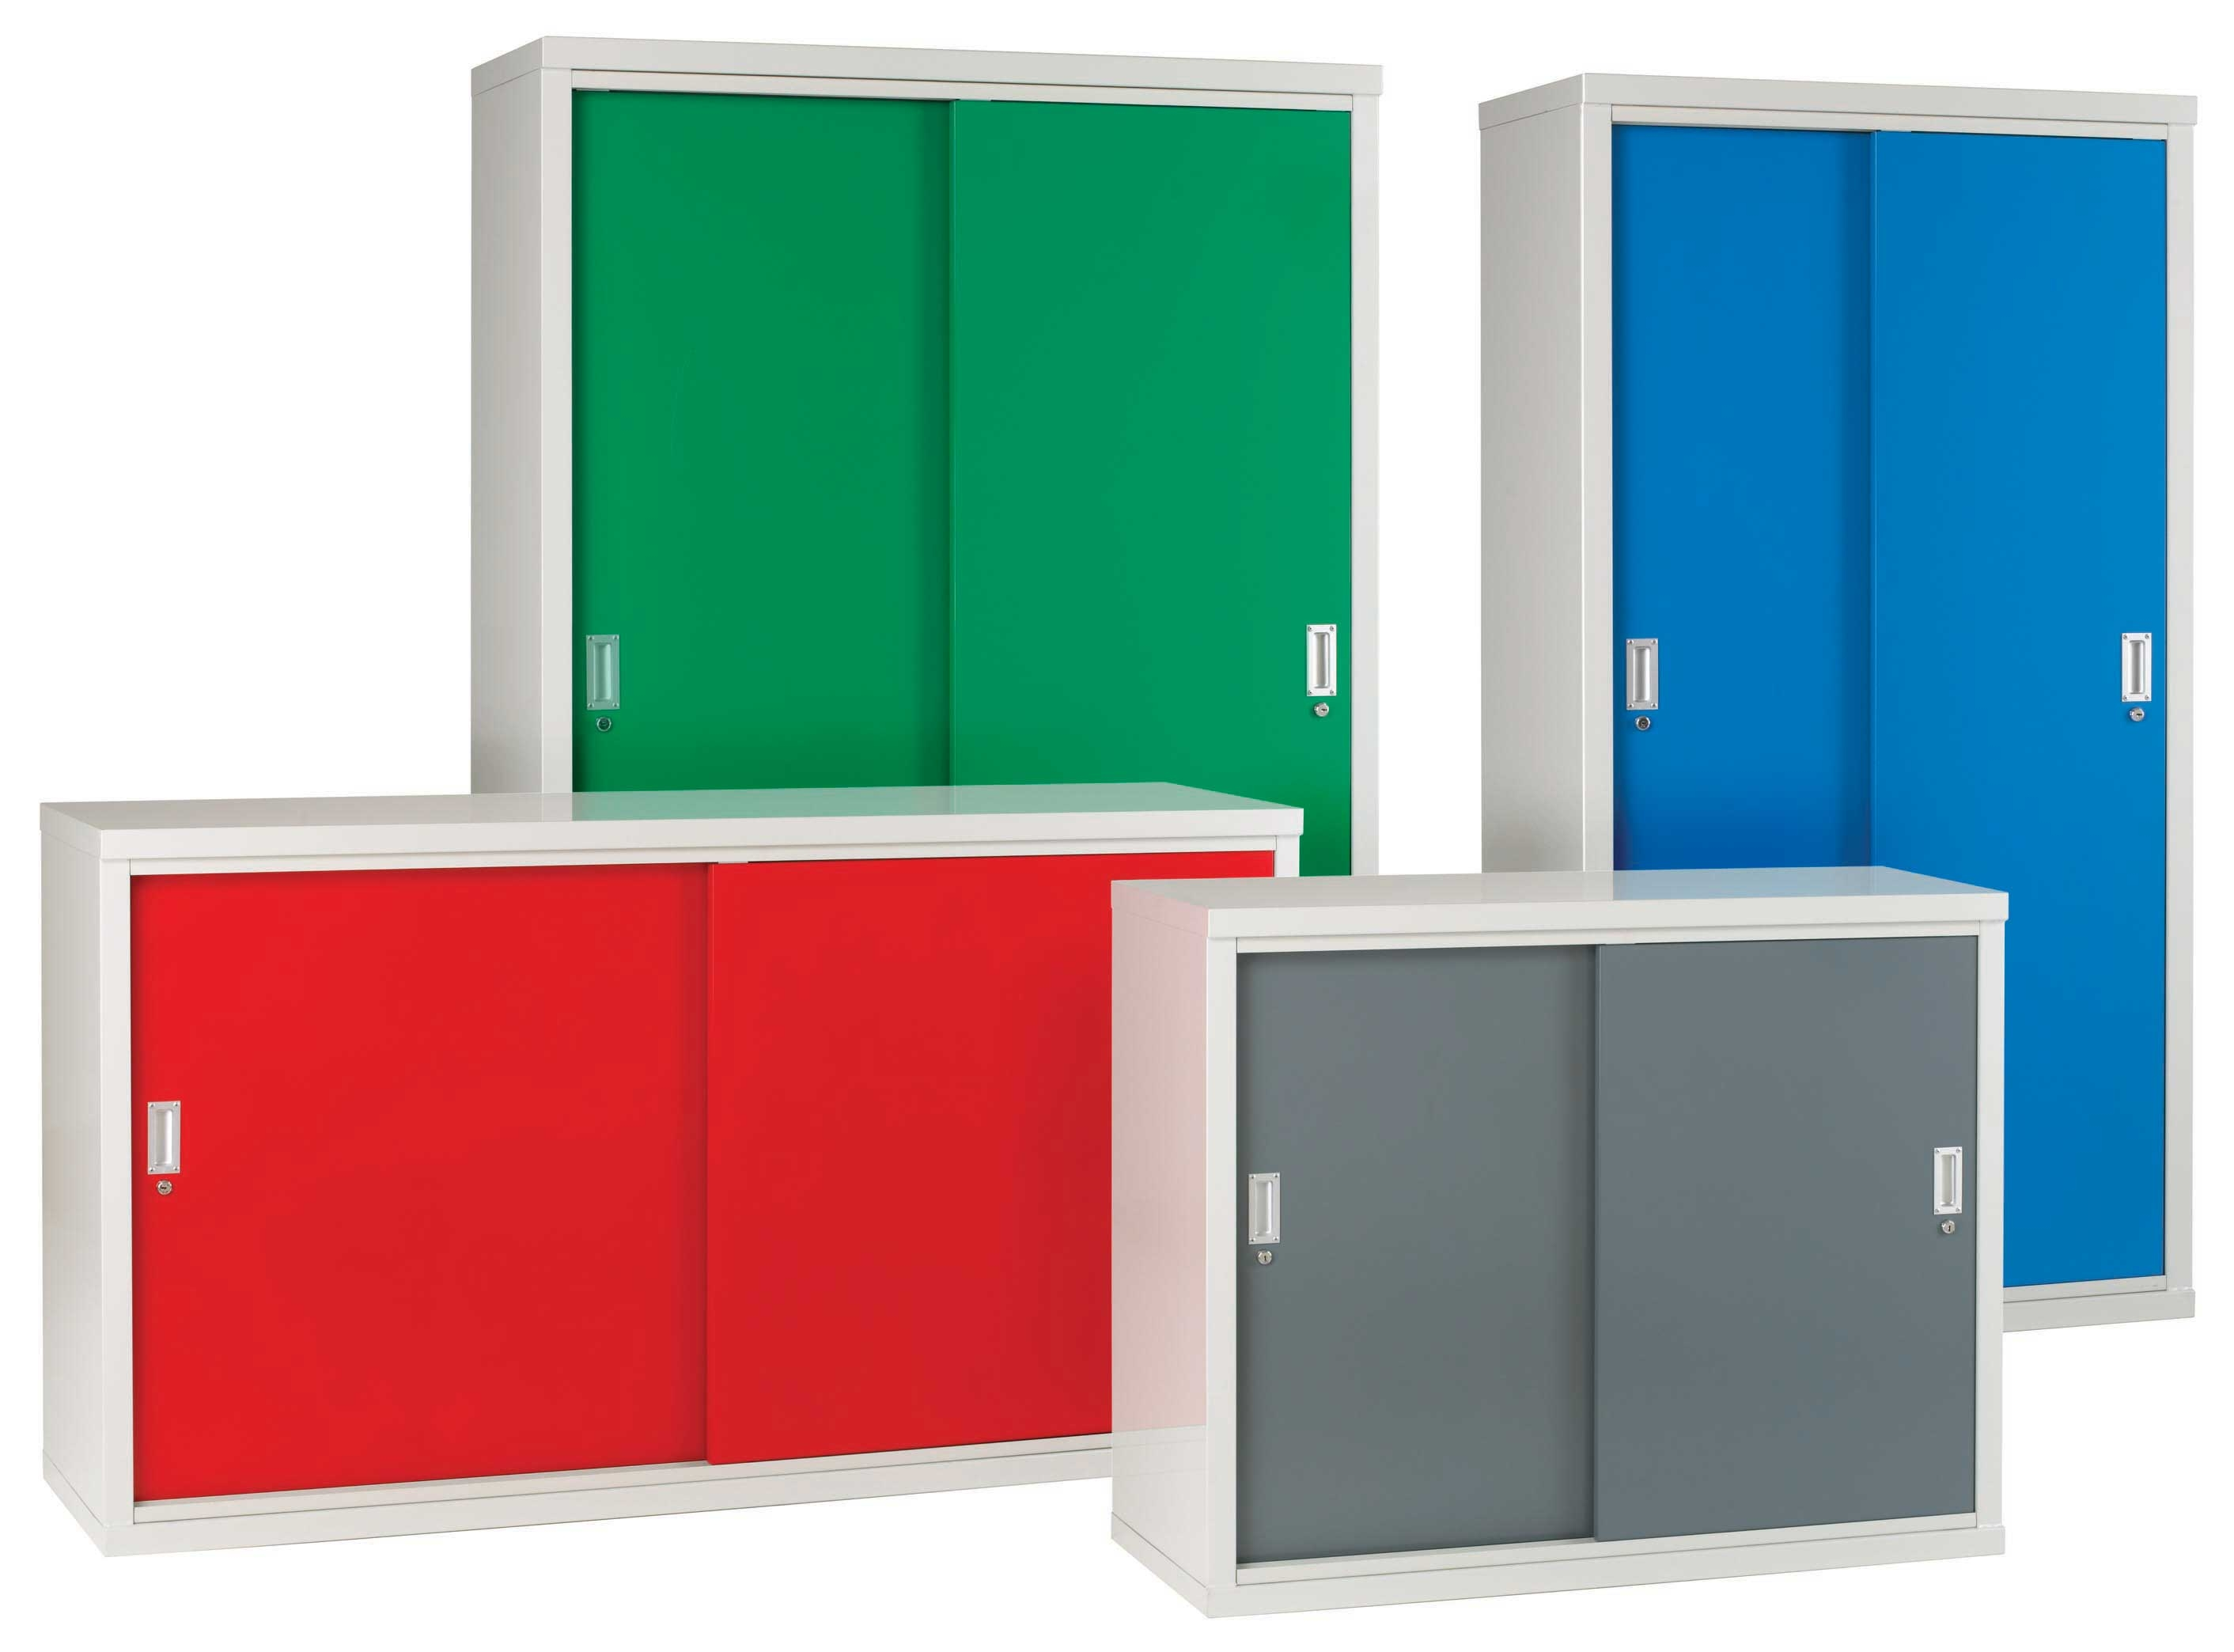 Wall Mounted Storage Cabinet With Sliding Doors